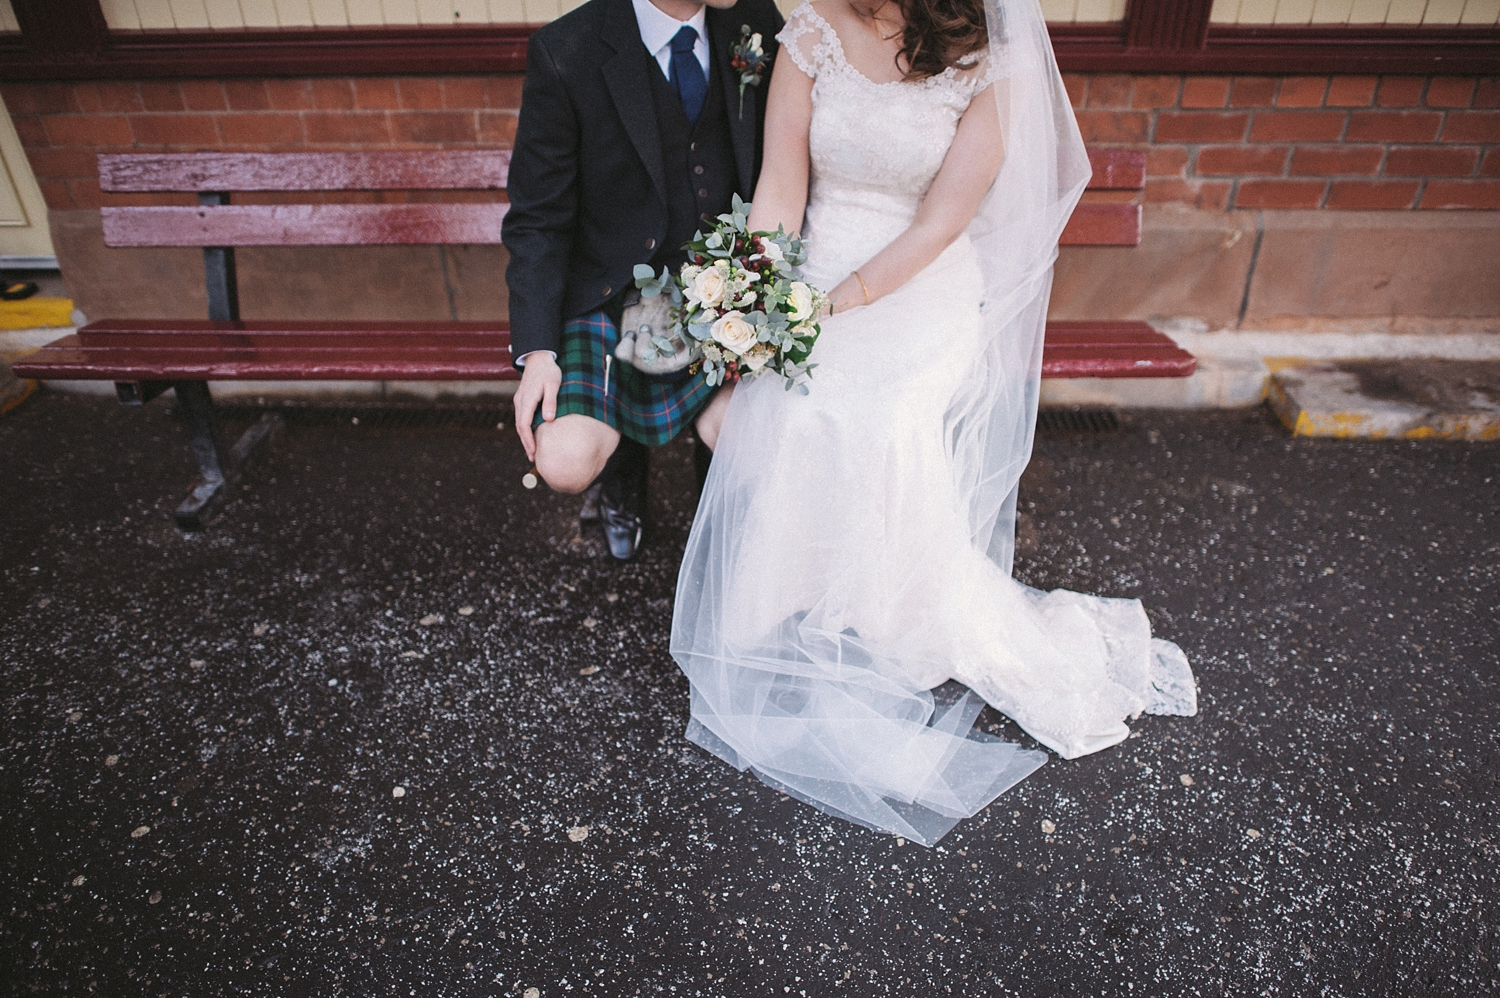 1429-lisa-devine-photography-alternative-stylish-creative-wedding-photography-glasgow-scotland-uk.JPG